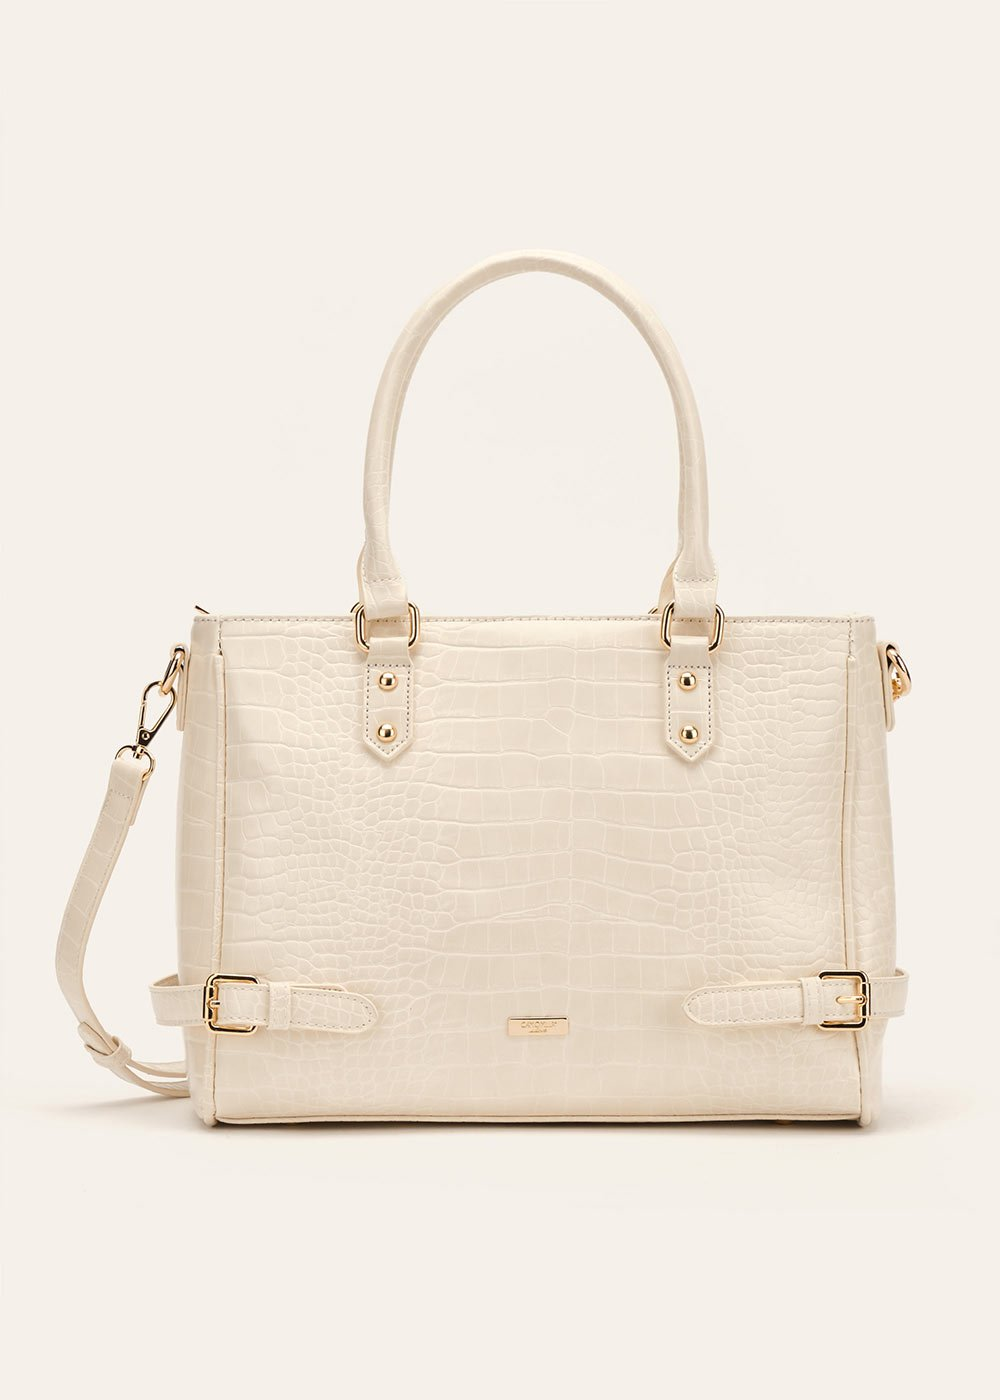 Shopping bag Bianca in cocco - Beige - Donna